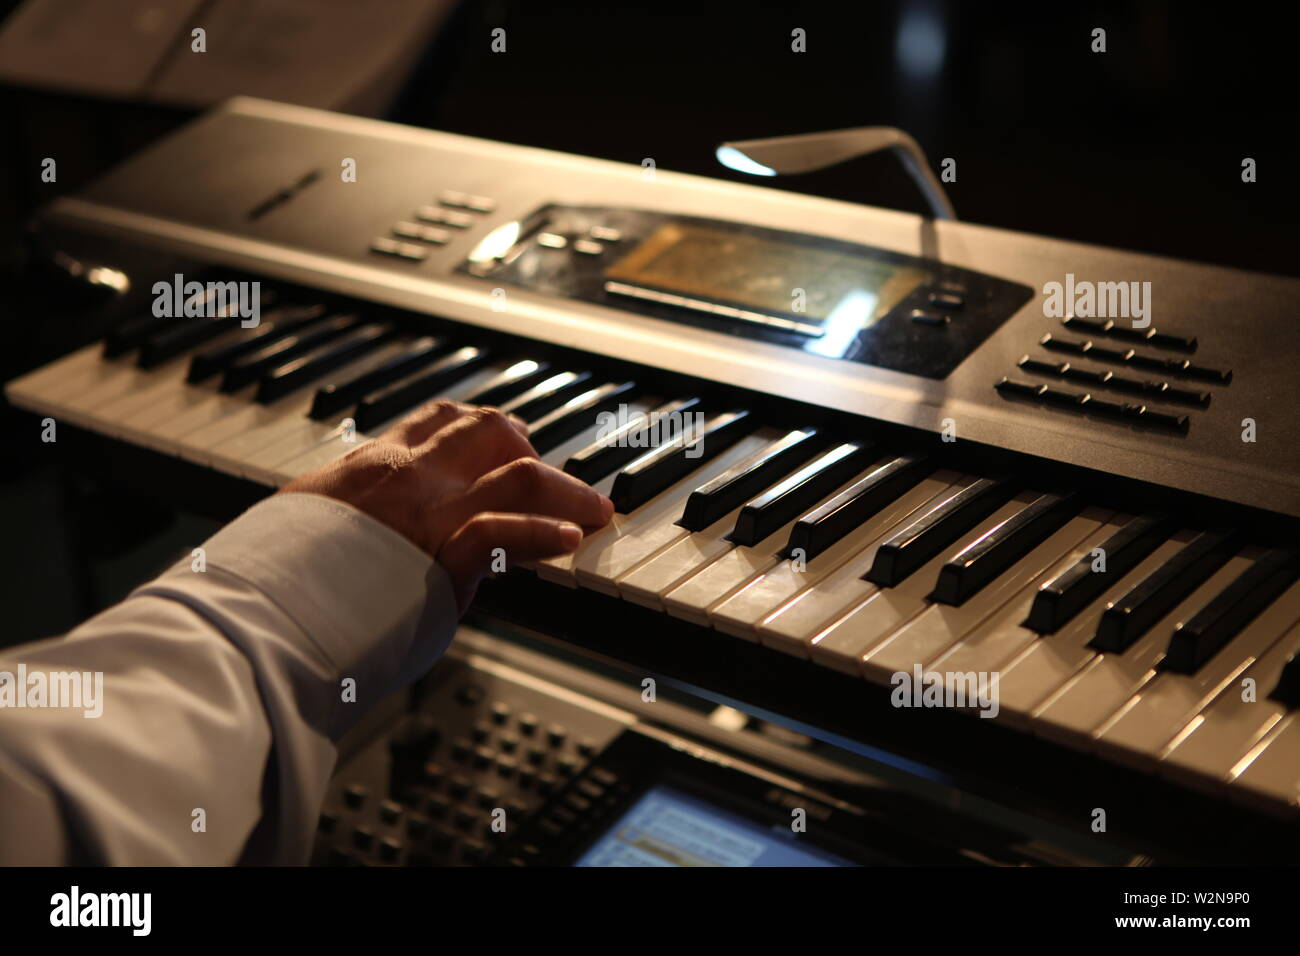 electric keyboard close u with players hand - Stock Image